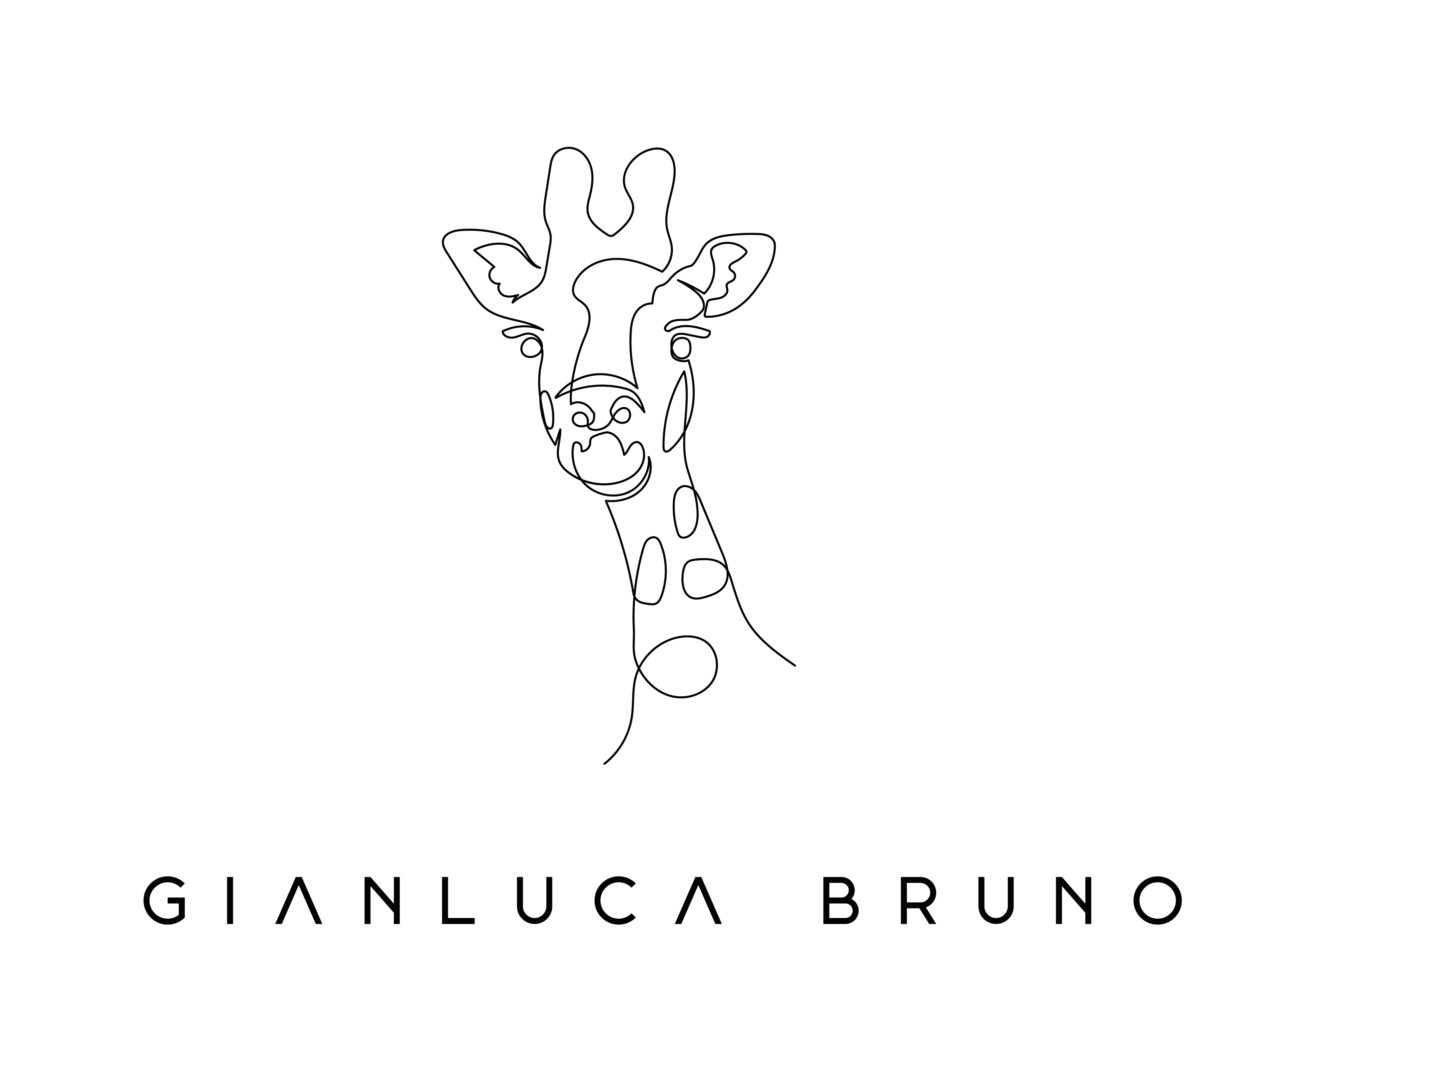 gianlucabruno.it